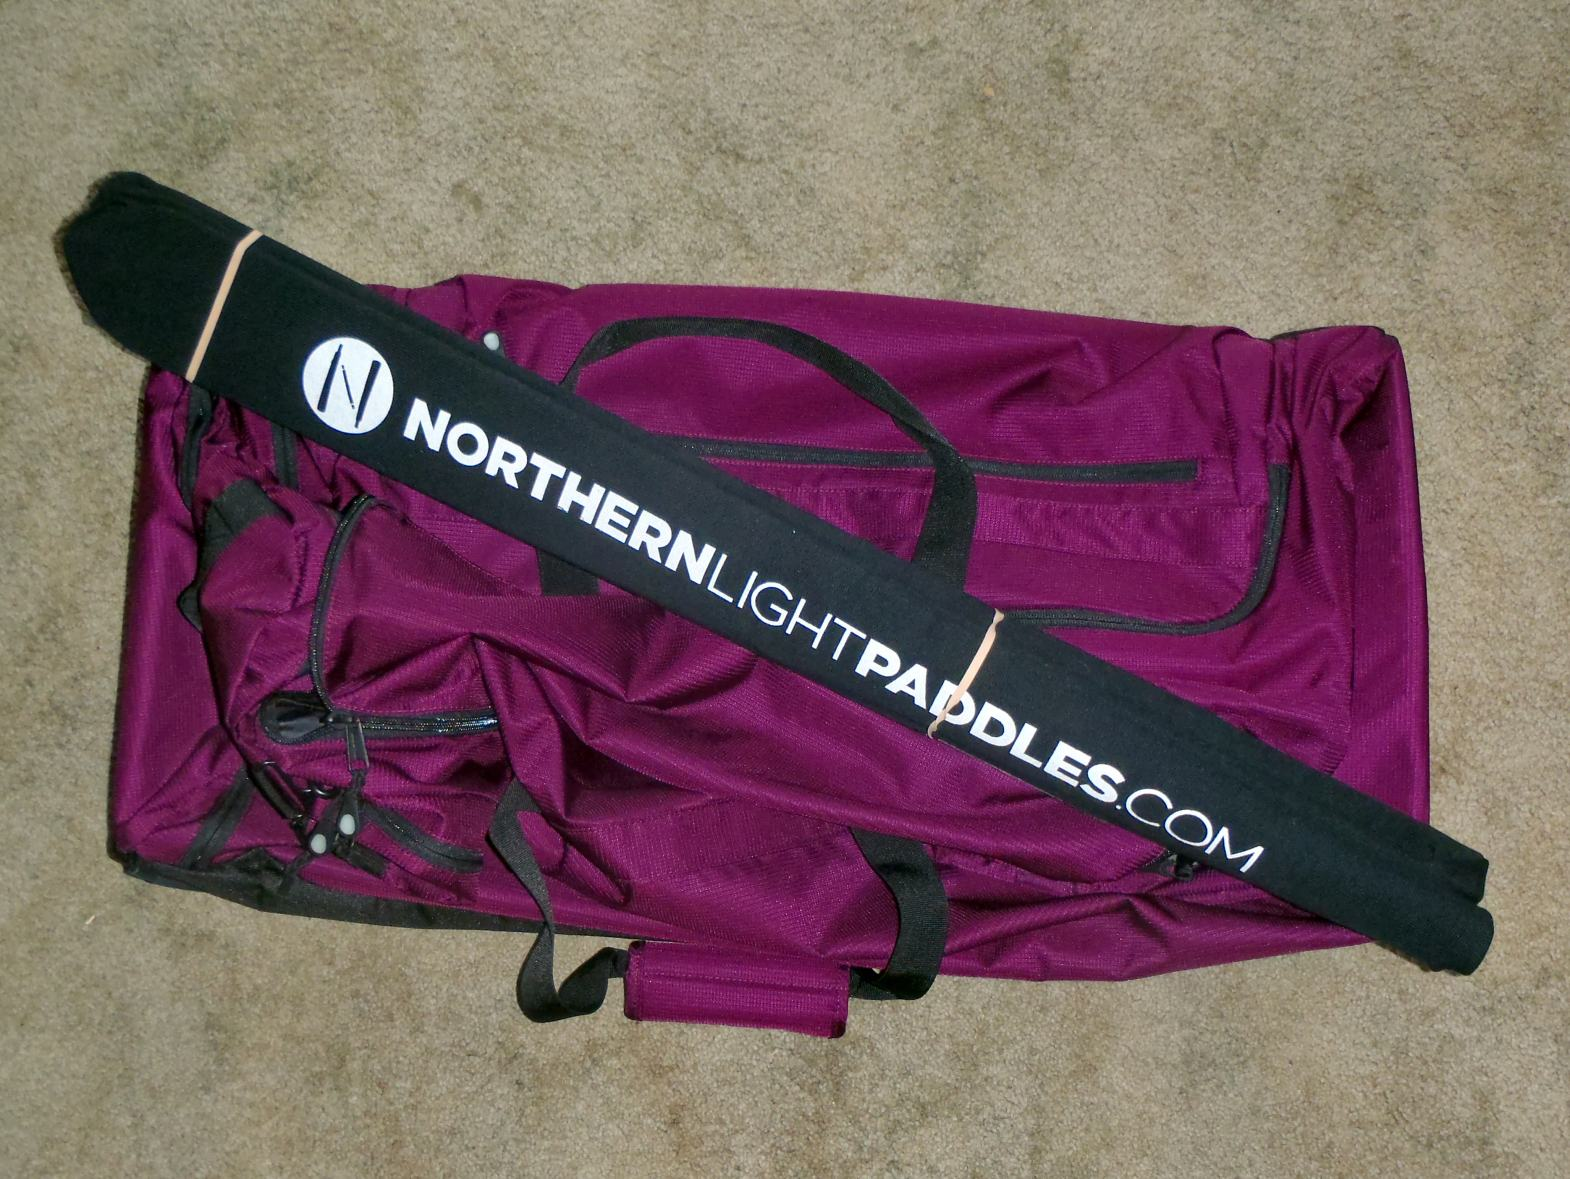 Northern Light Paddles